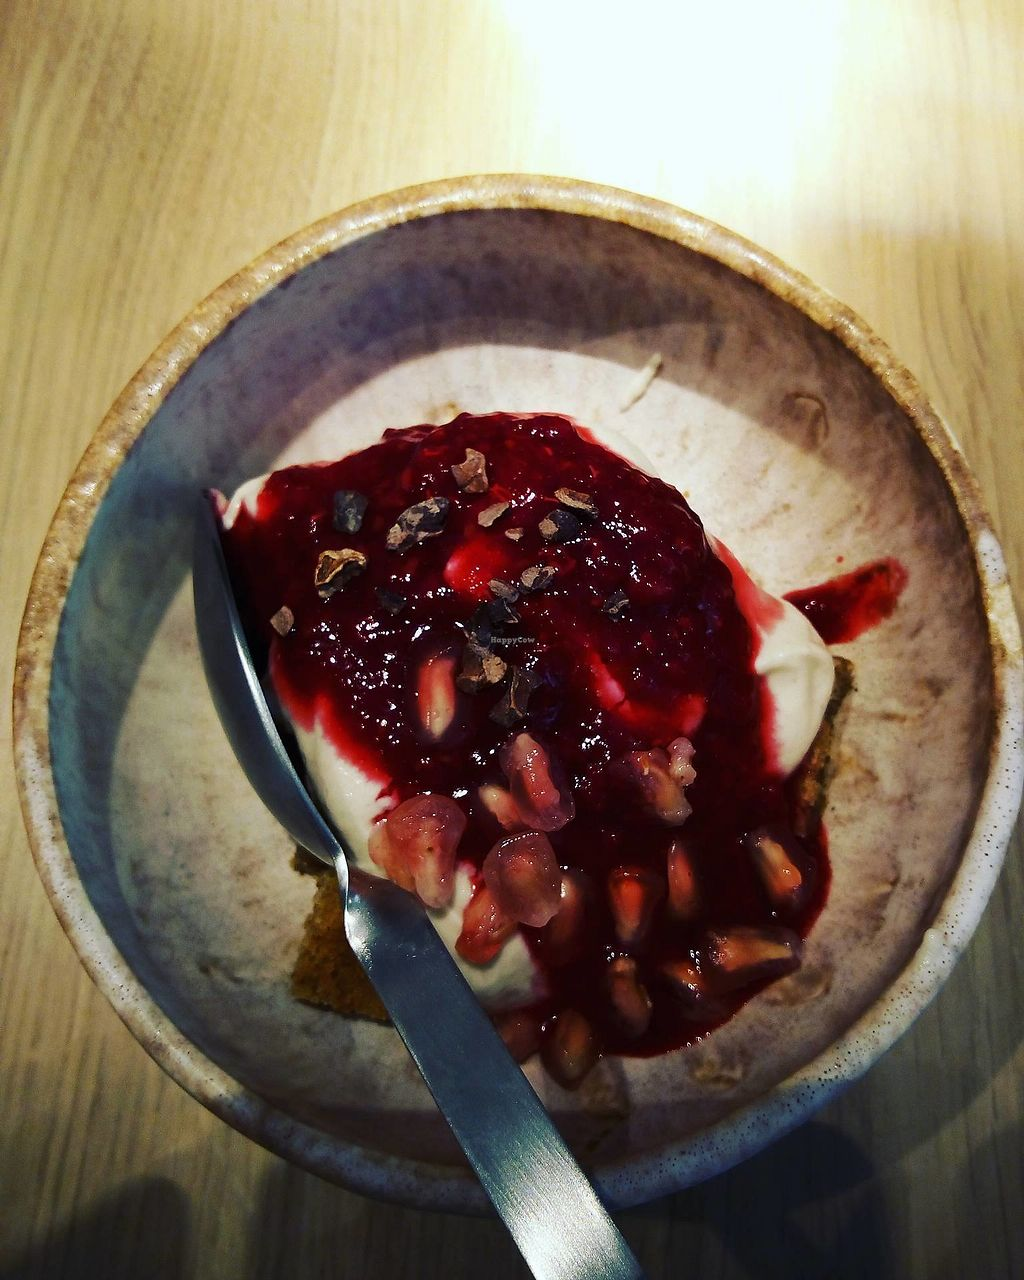 """Photo of My Mother's Daughters  by <a href=""""/members/profile/AnaCordeiro"""">AnaCordeiro</a> <br/>vegan trifle with berries and pomegranate sauce and cashew cream  <br/> November 23, 2017  - <a href='/contact/abuse/image/105170/328464'>Report</a>"""